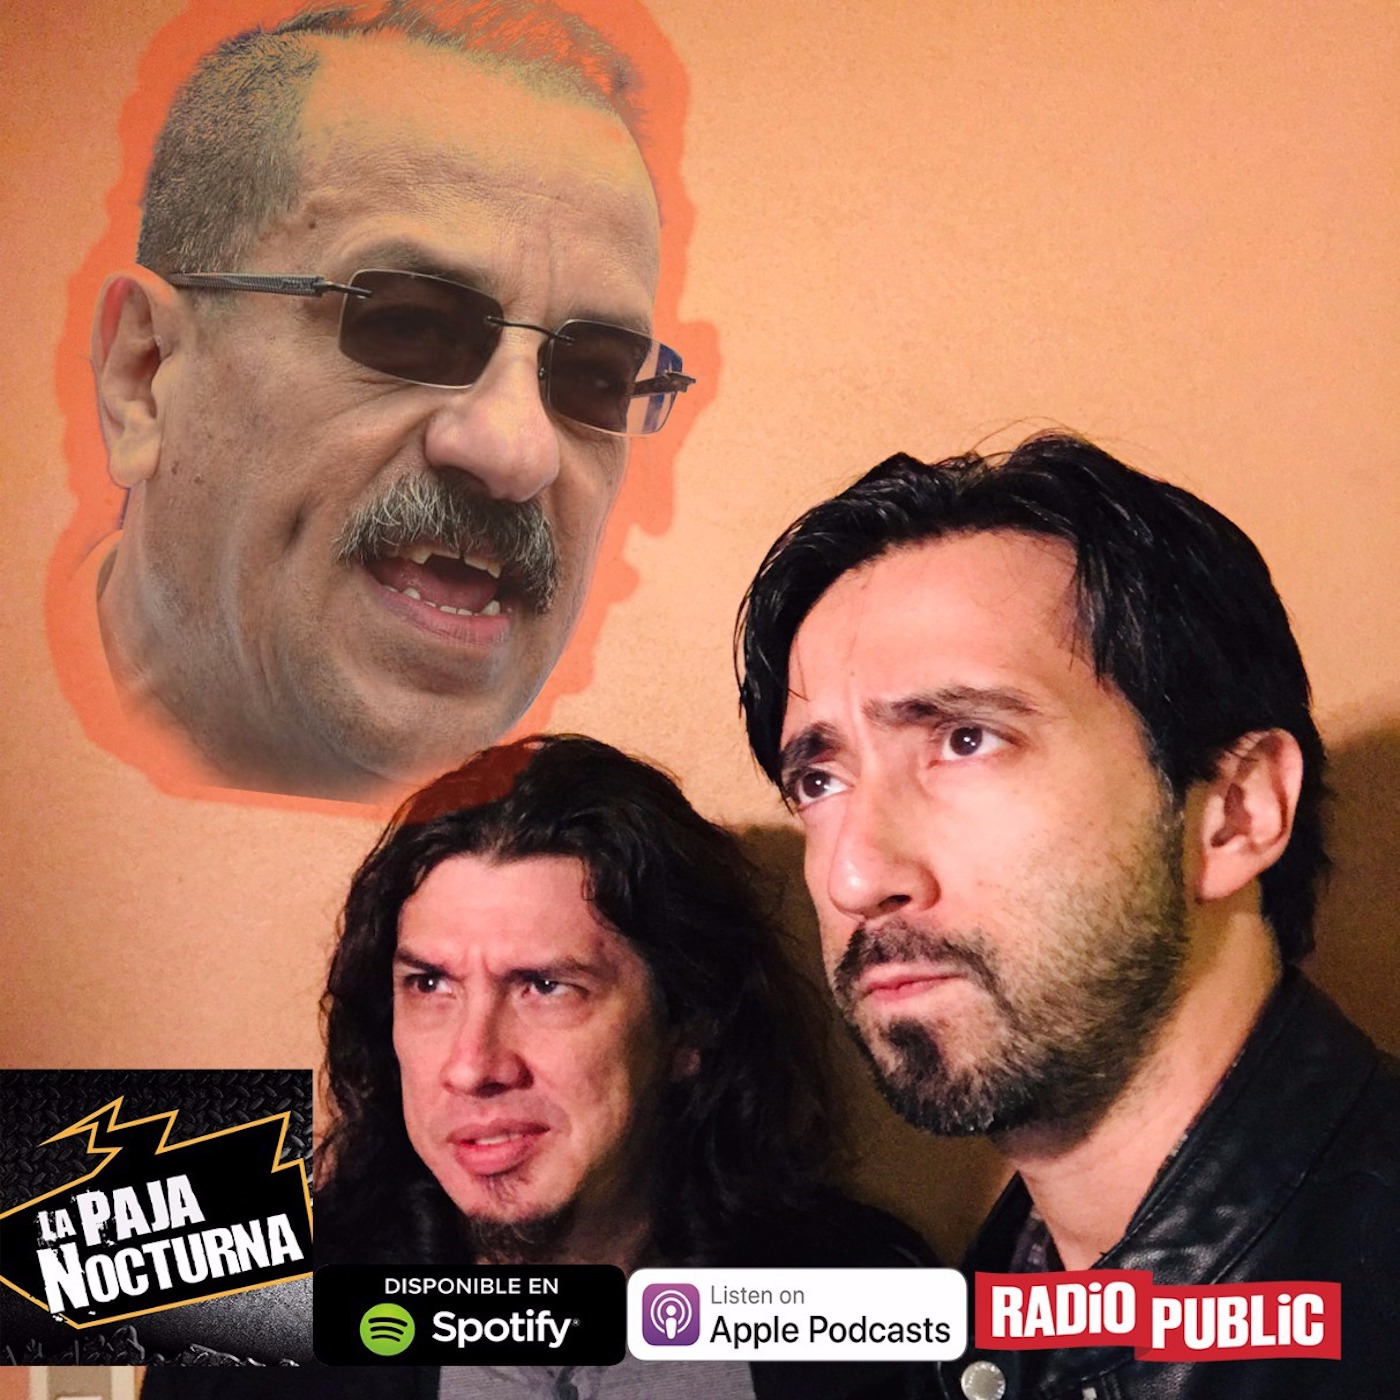 La Paja nocturna Podcast Episodio 5